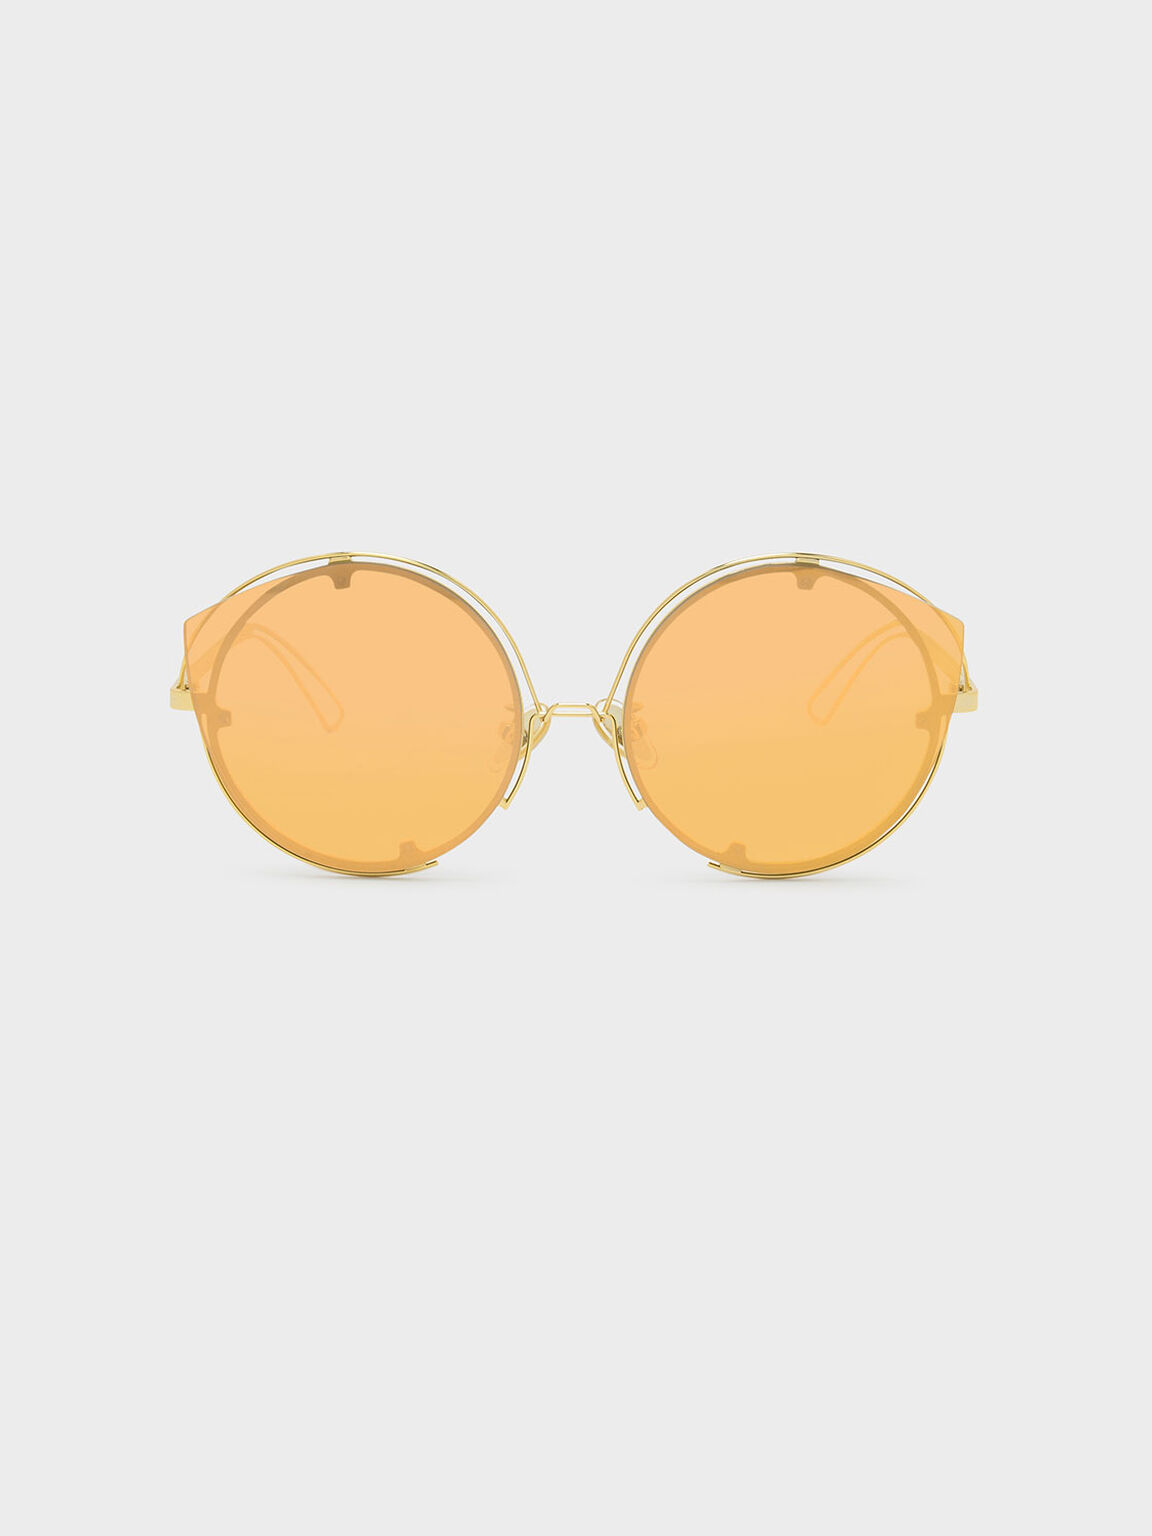 Wire Frame Sunglasses, Gold, hi-res